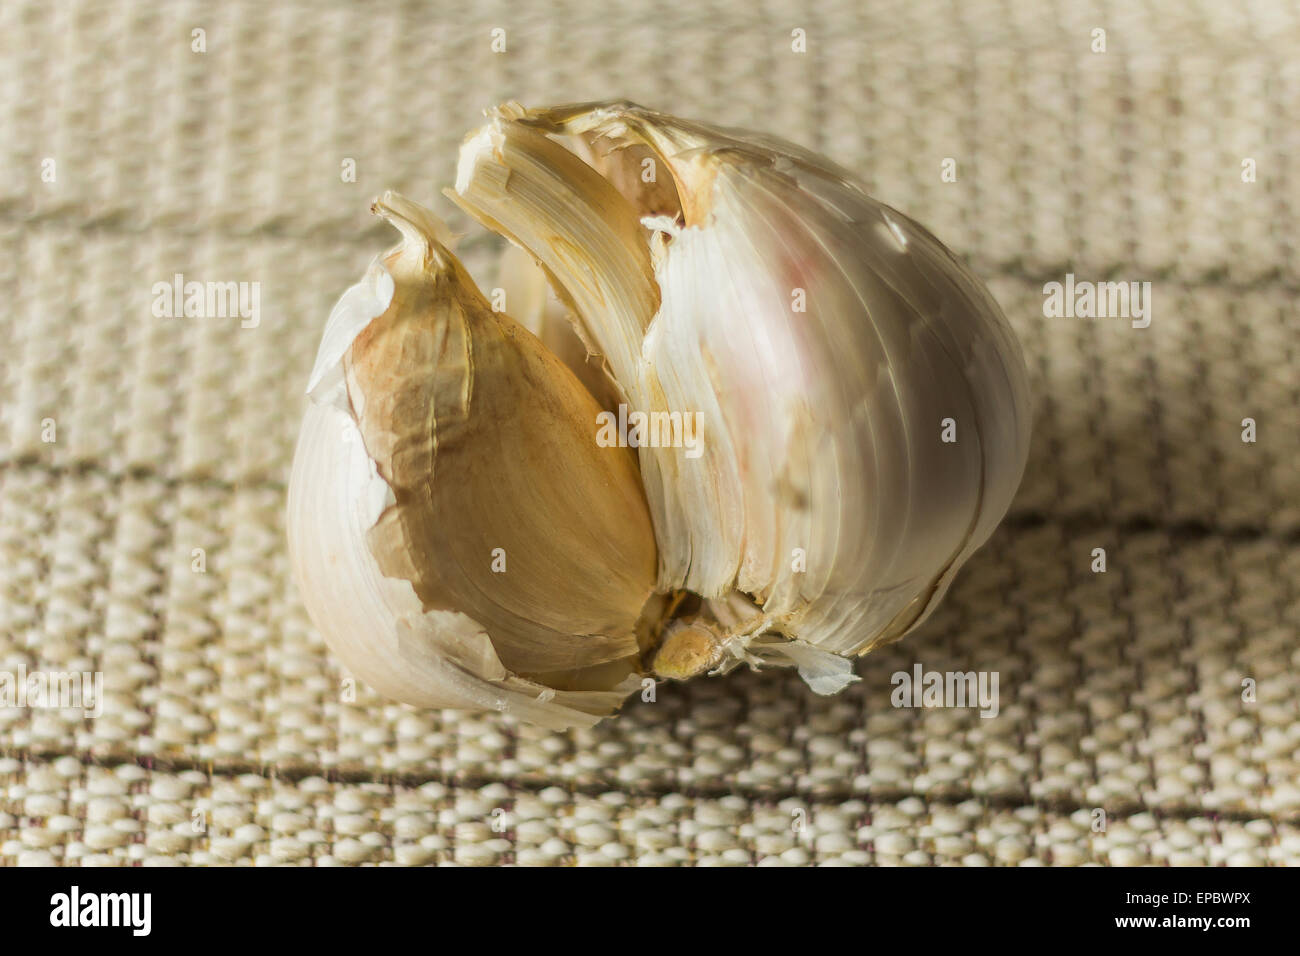 Extra large elephant garlic with moody lighting for farmers background photo - Stock Image